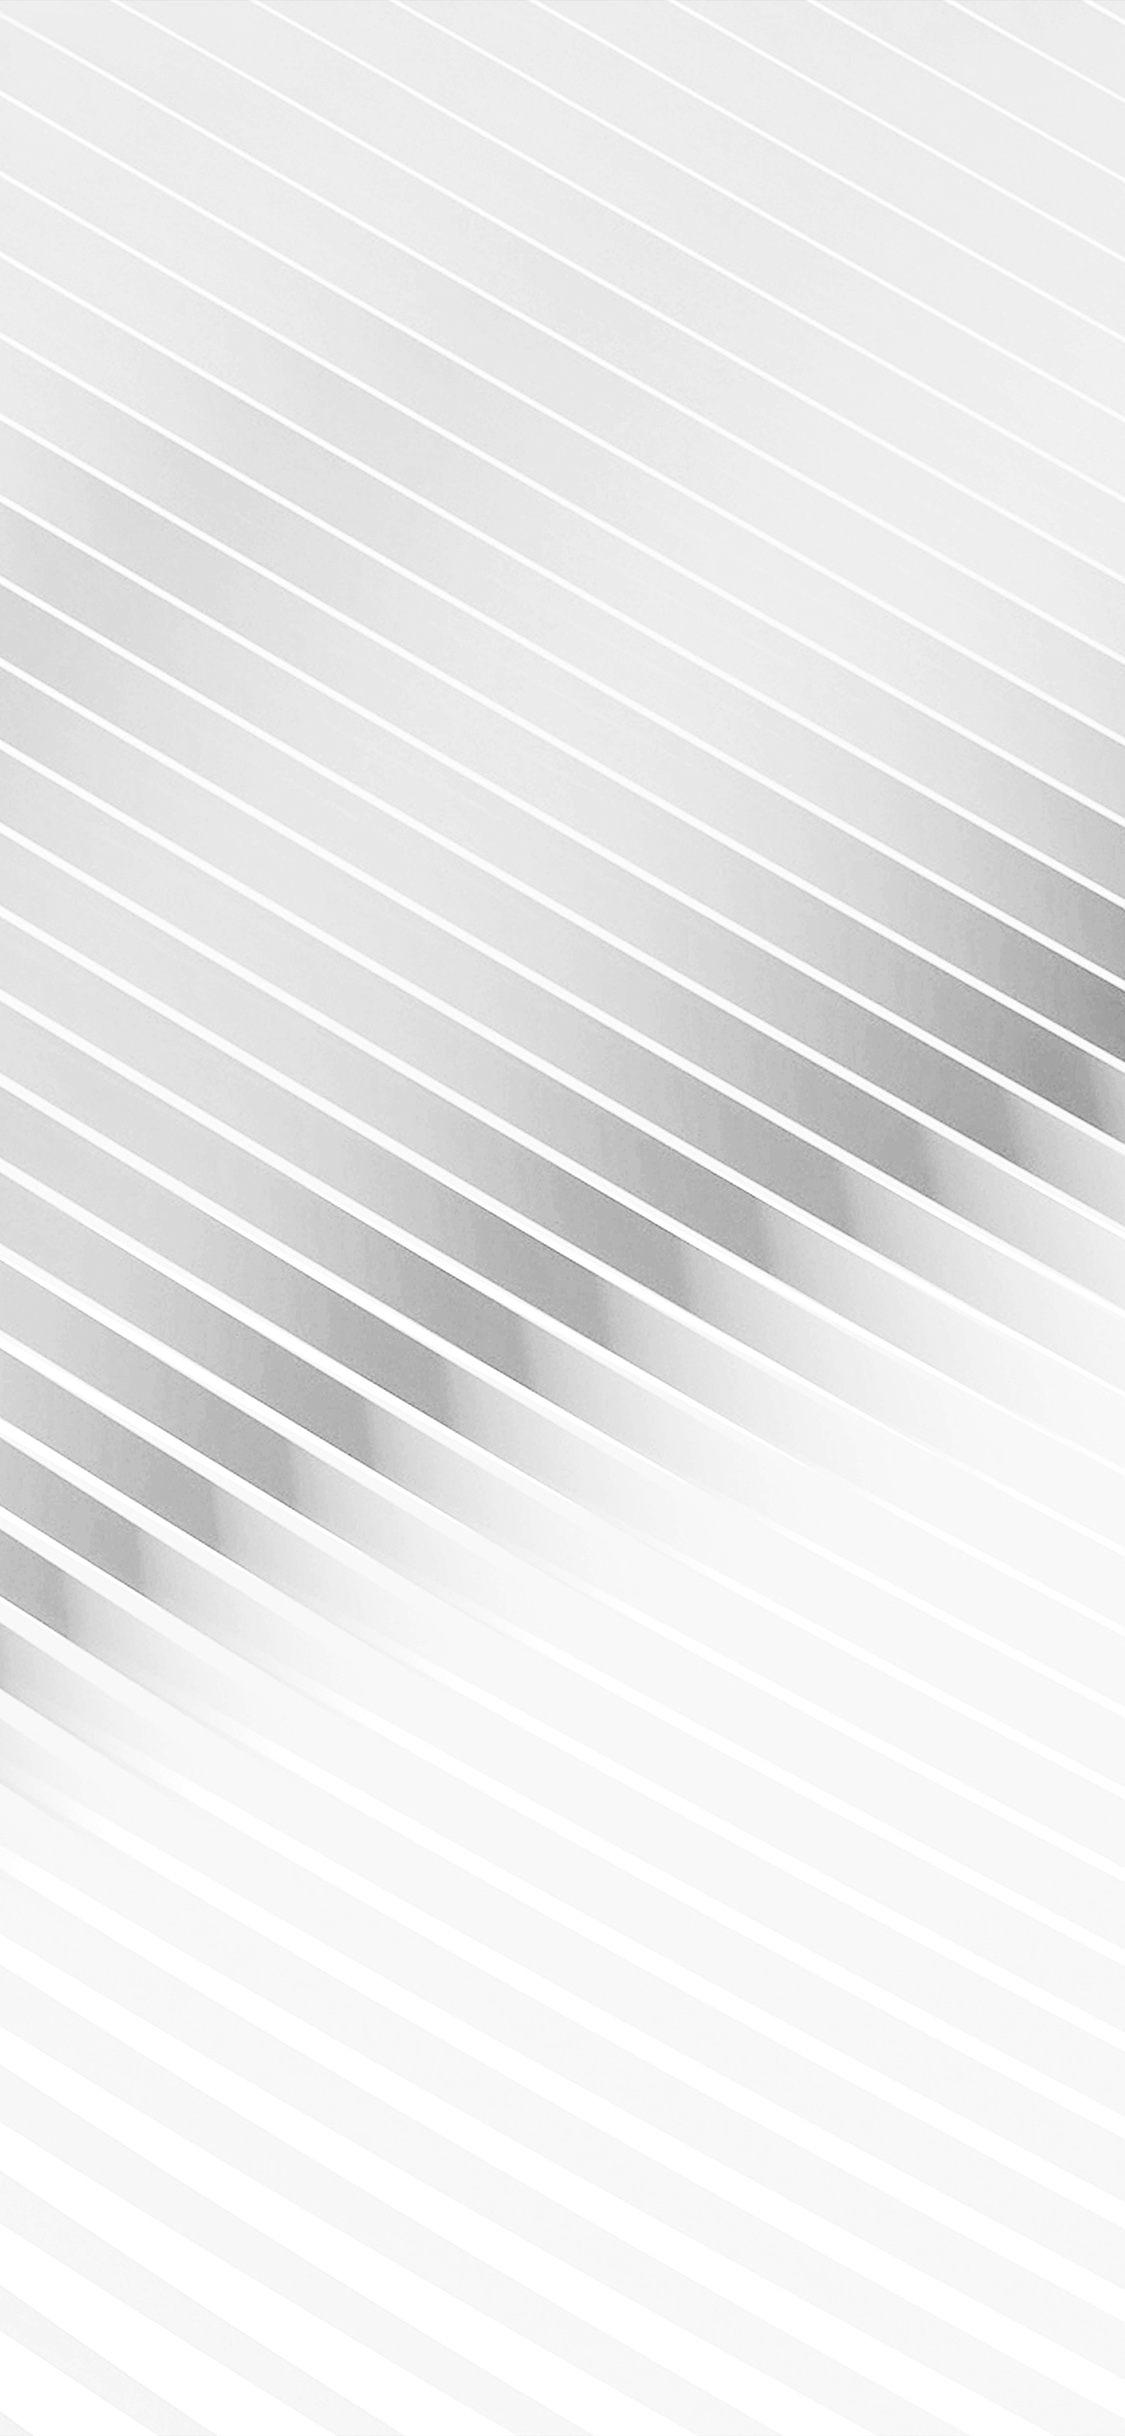 iPhoneXpapers.com-Apple-iPhone-wallpaper-vp80-lg-g-flex-bw-line-gray-pattern-white